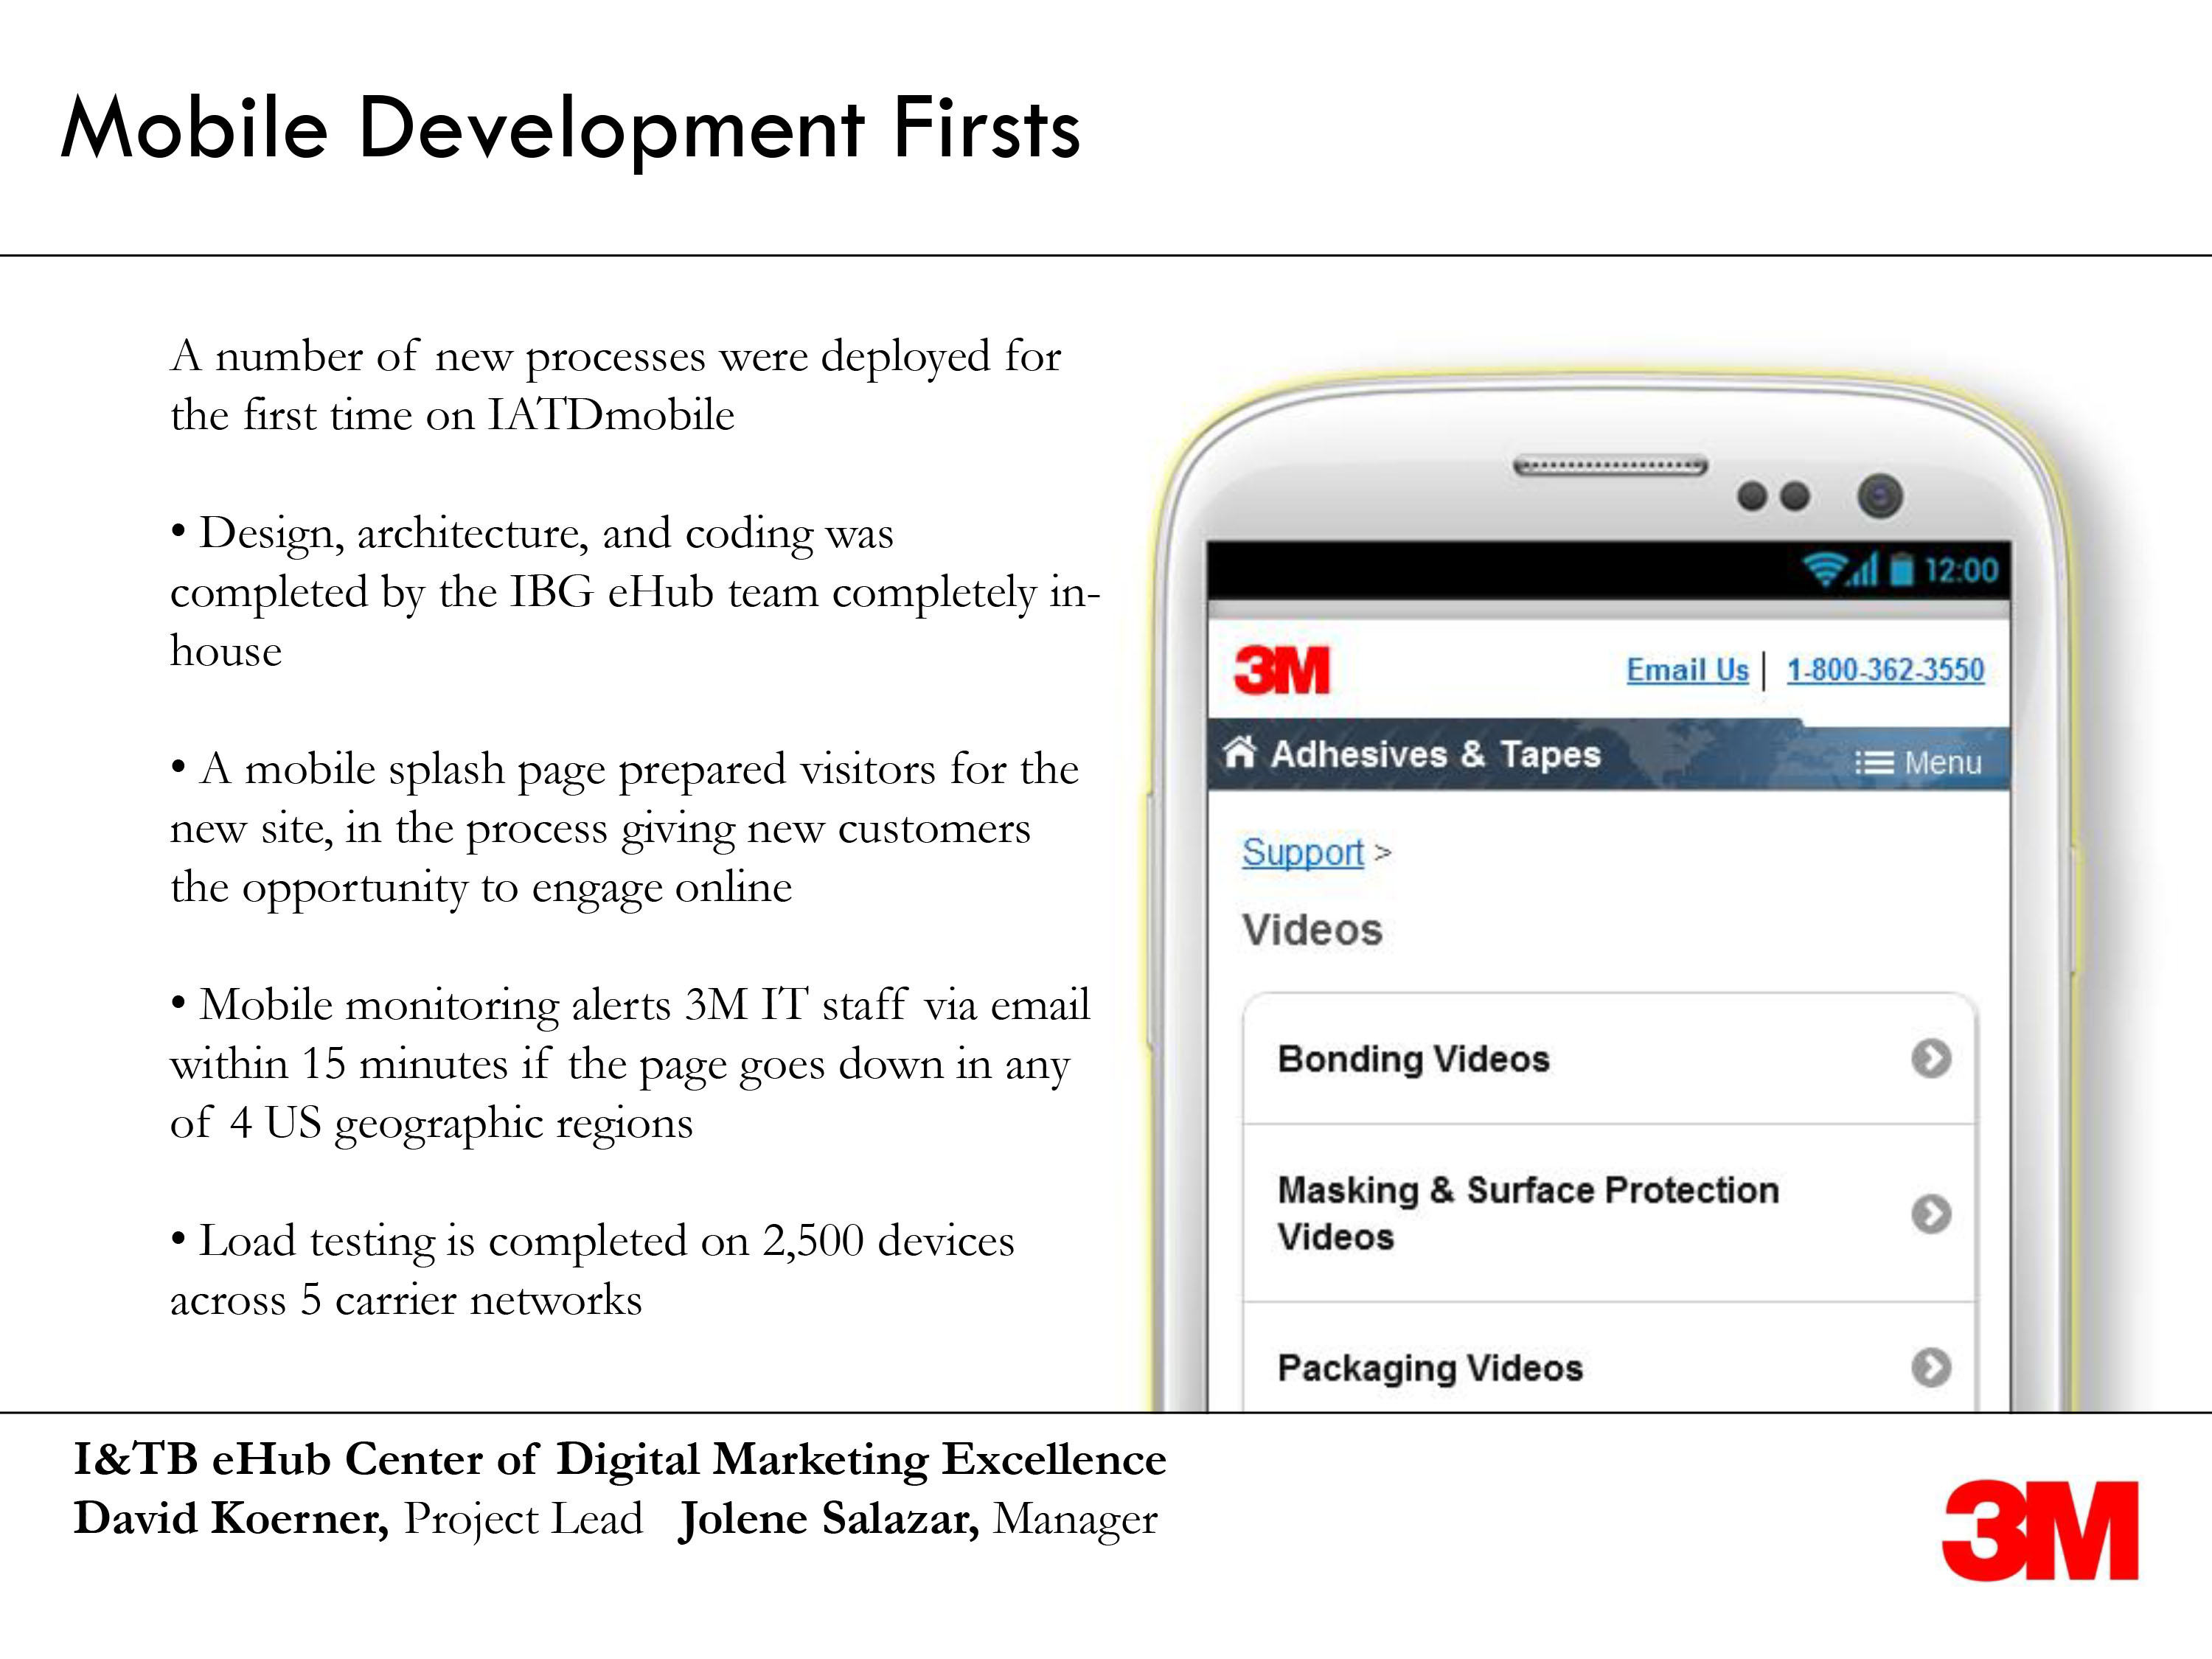 mobile firsts by David Koerner at 3M